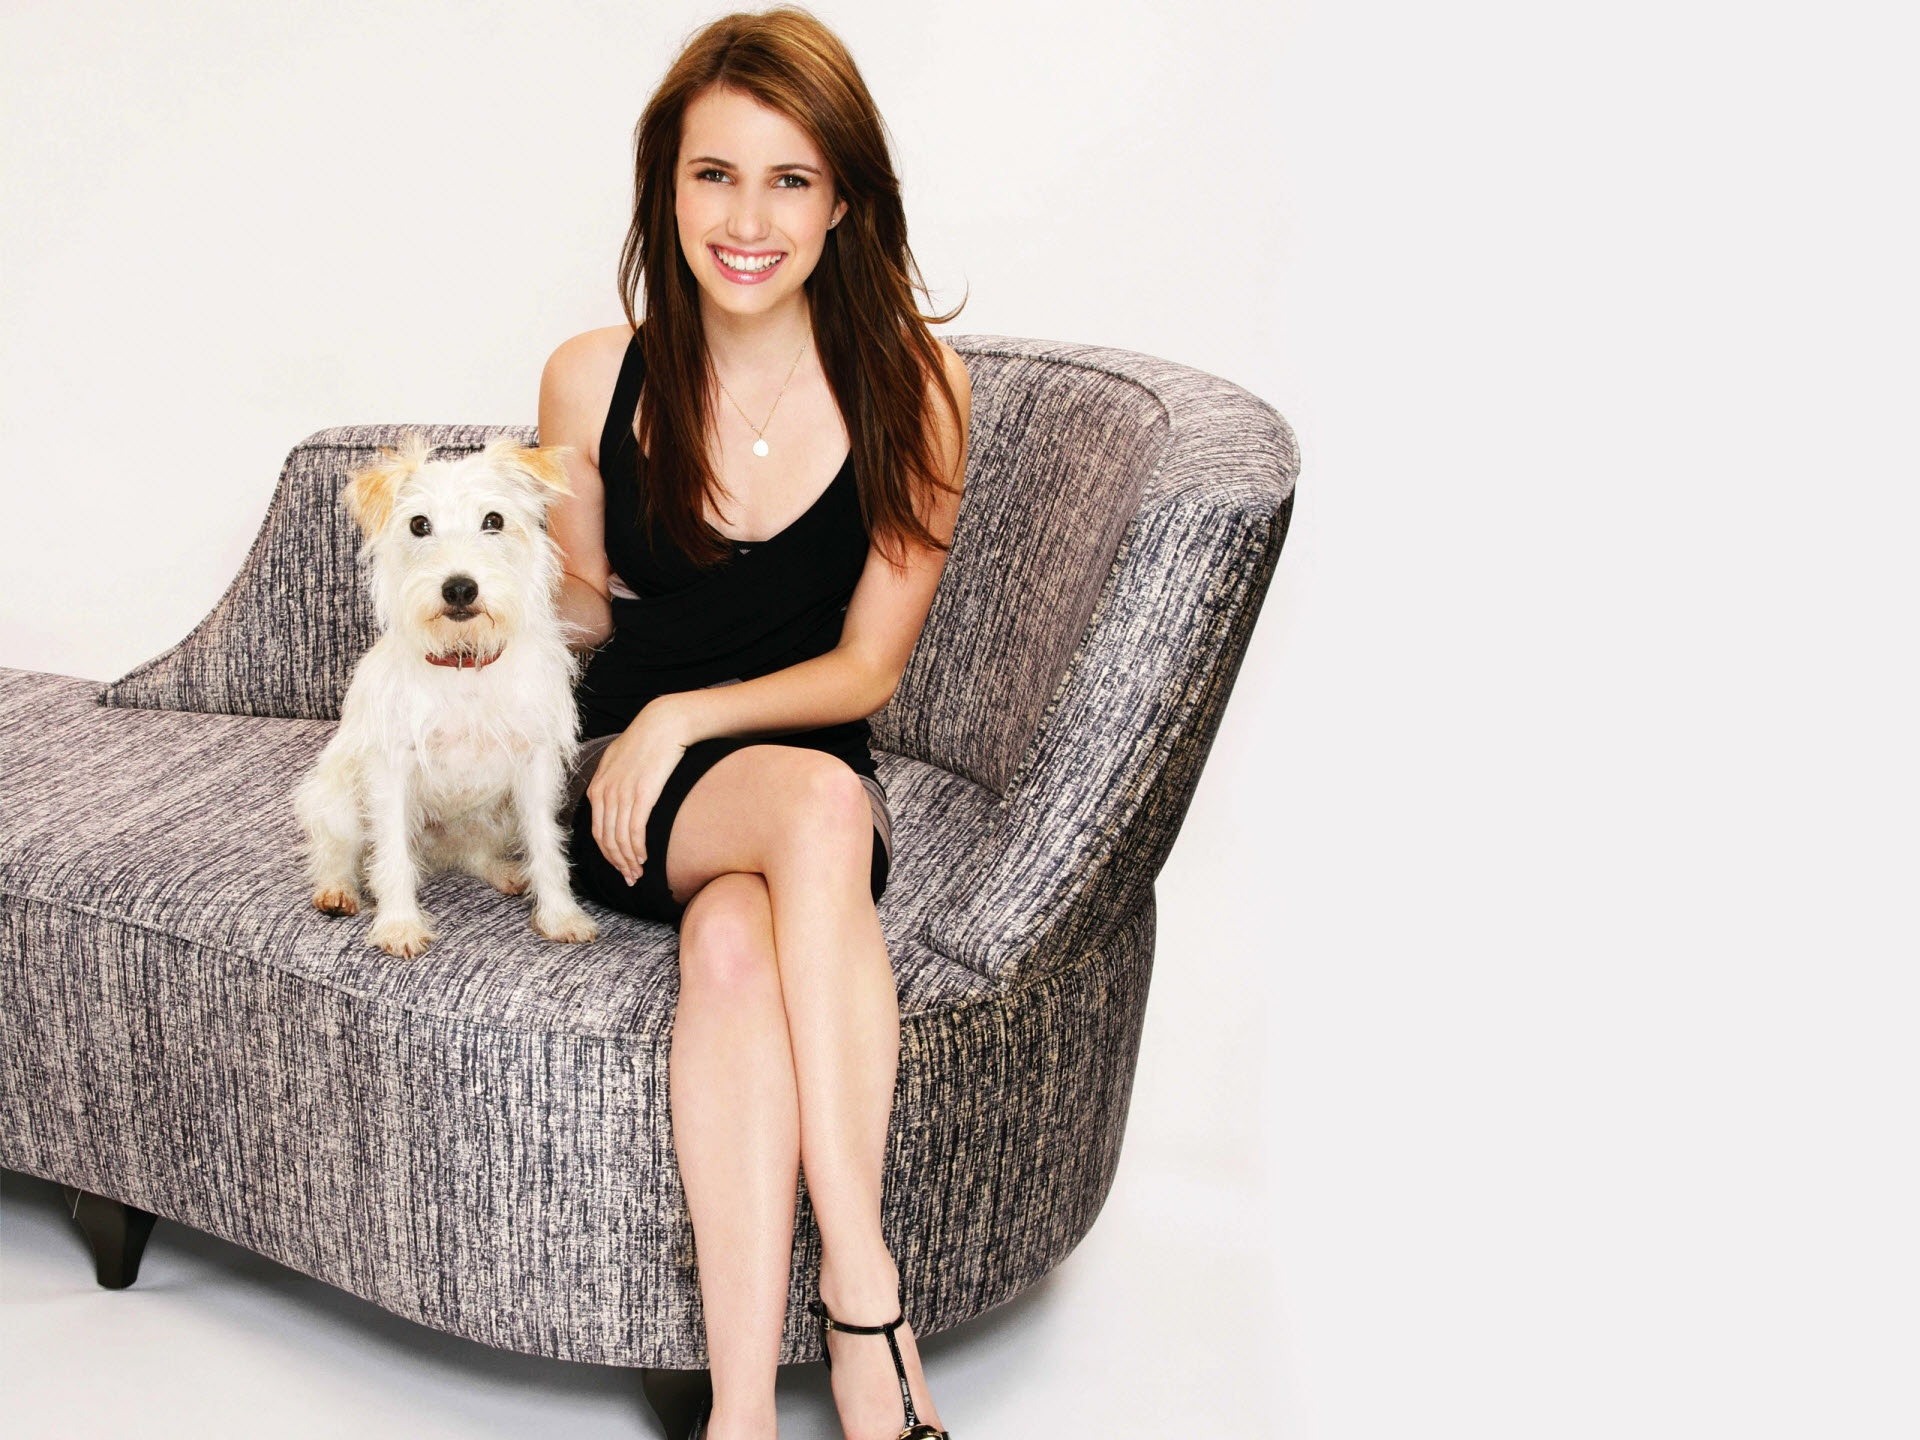 emma roberts wallpapers hd A7